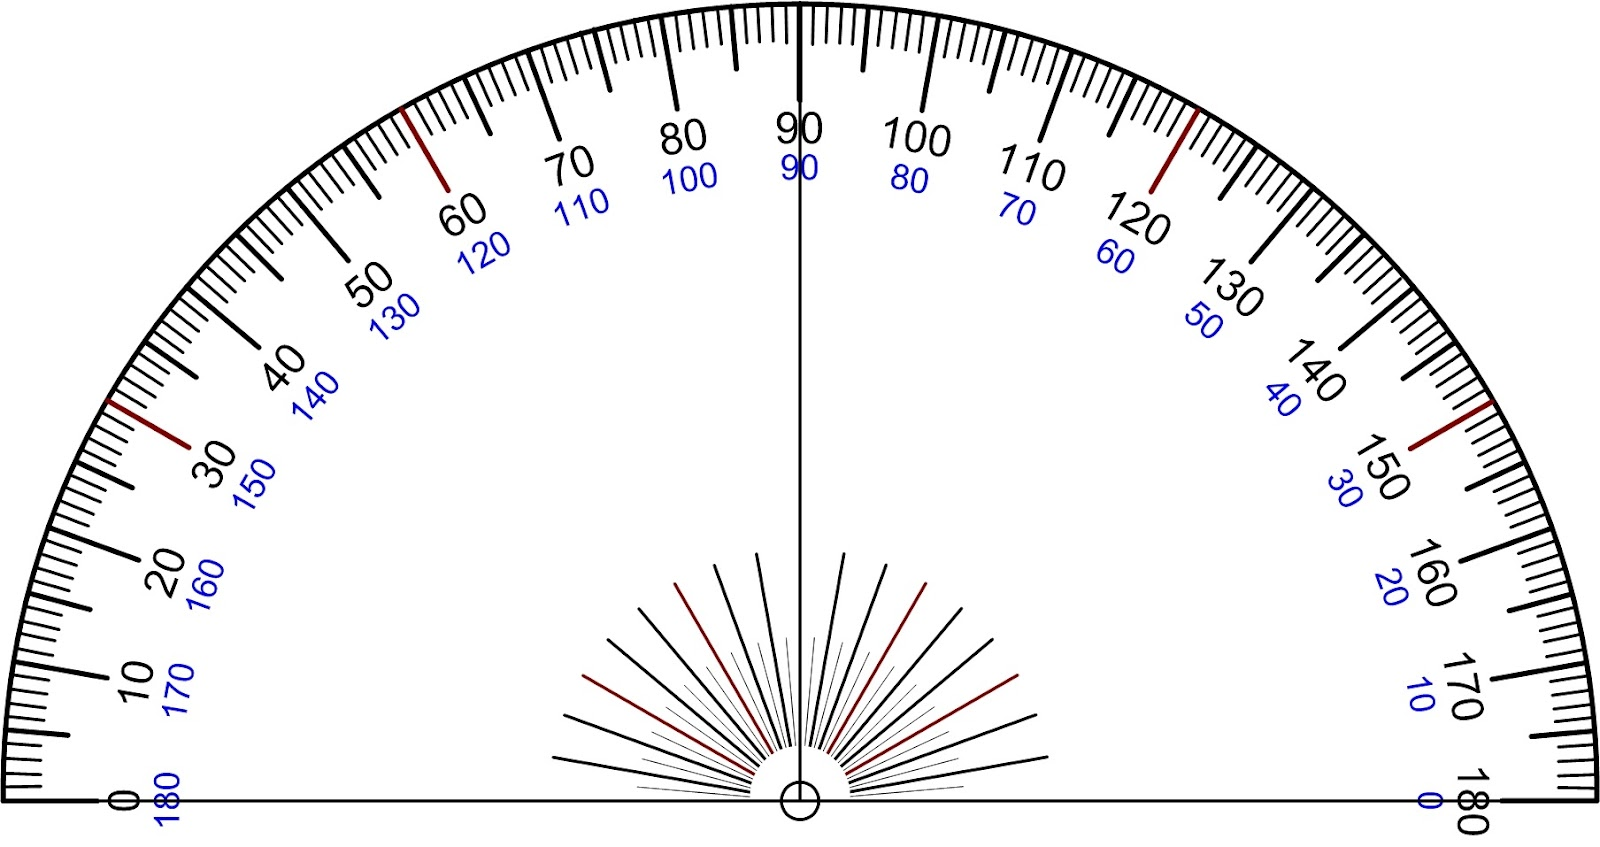 Median don steward mathematics teaching protractor for Circular protractor template